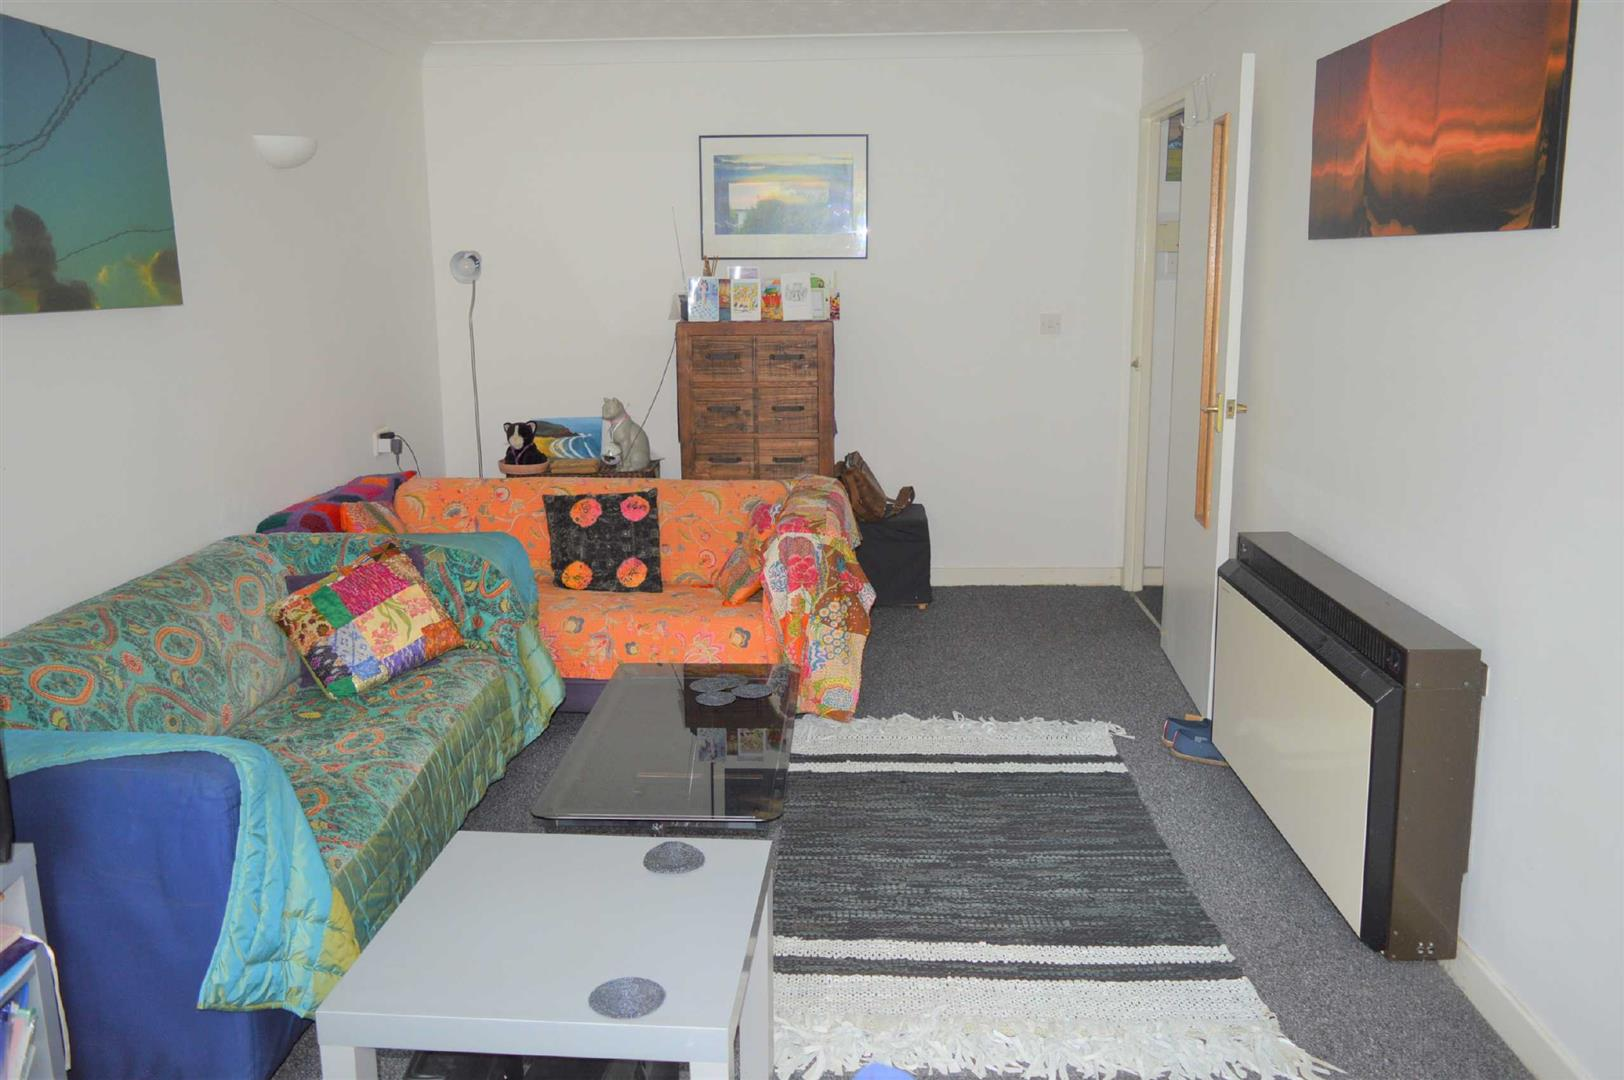 Homegower House, Swansea, SA1 4DH